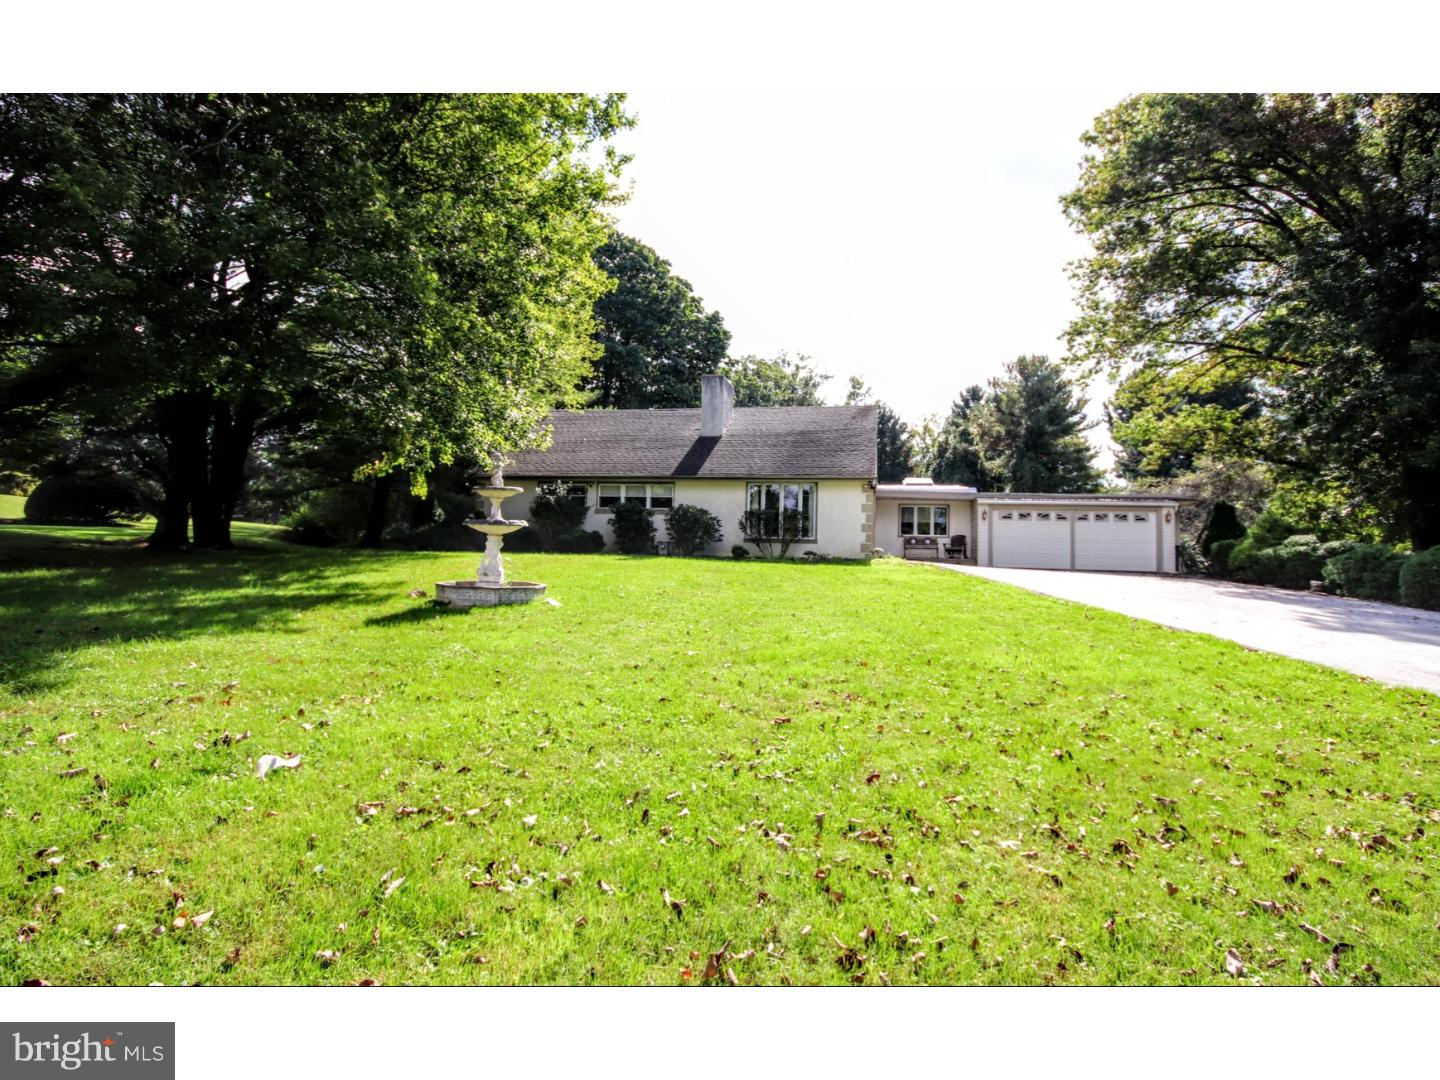 309 ELLIS ROAD, HAVERTOWN, PA 19083